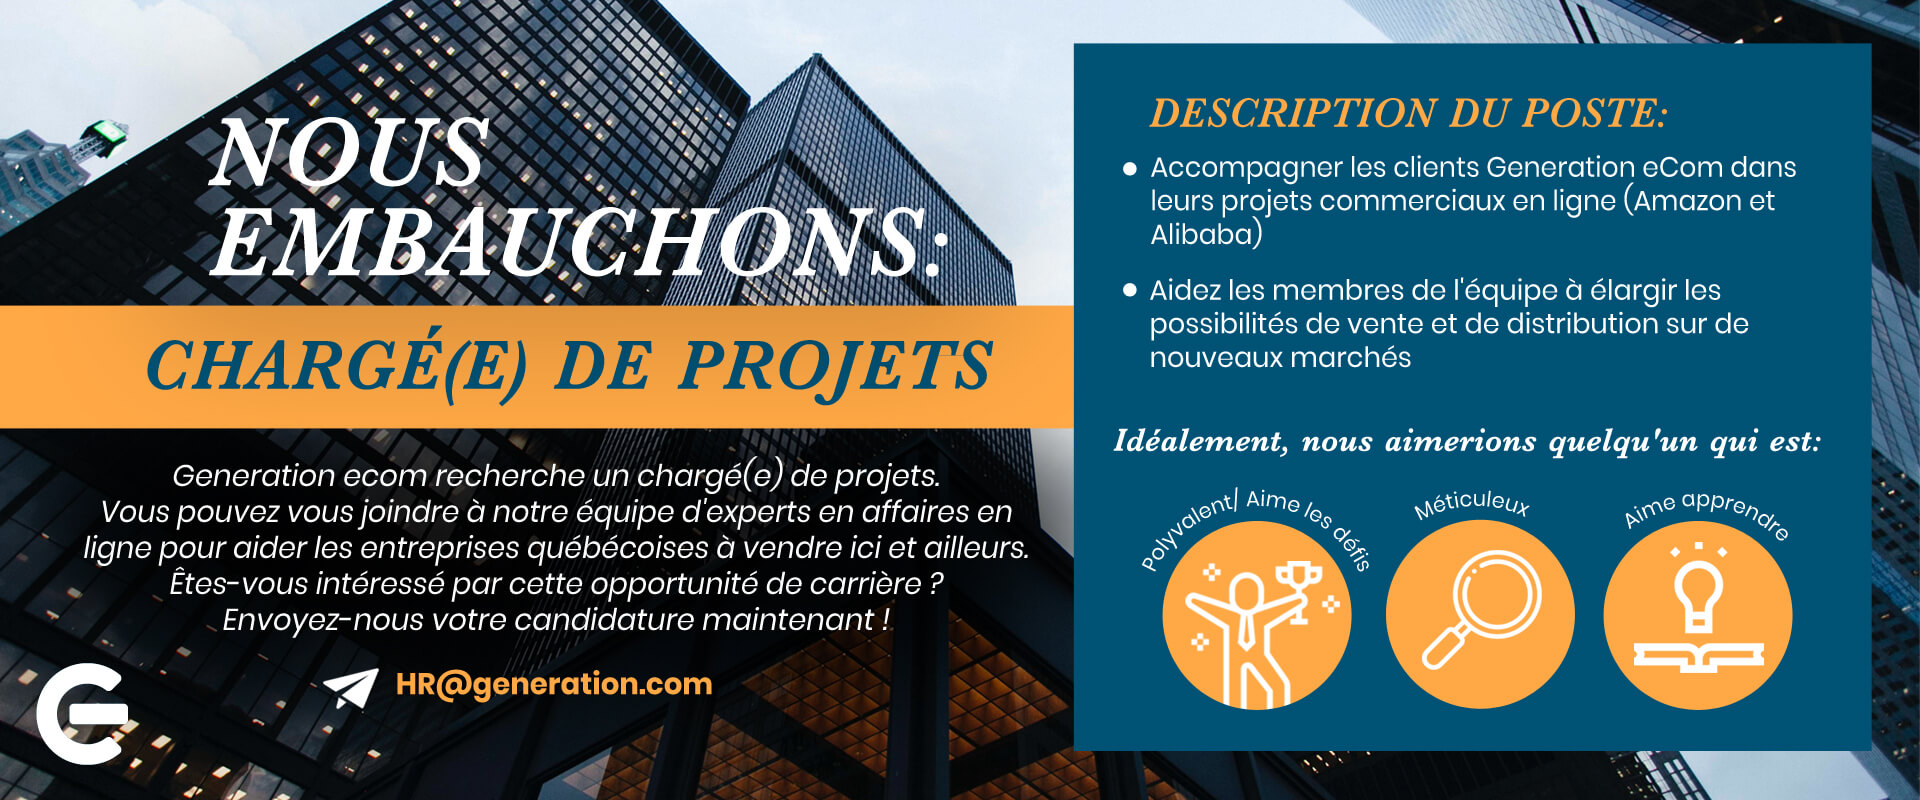 08-GENECOM-PROJECT-MANAGER-JOB SEARCH-FRENCH